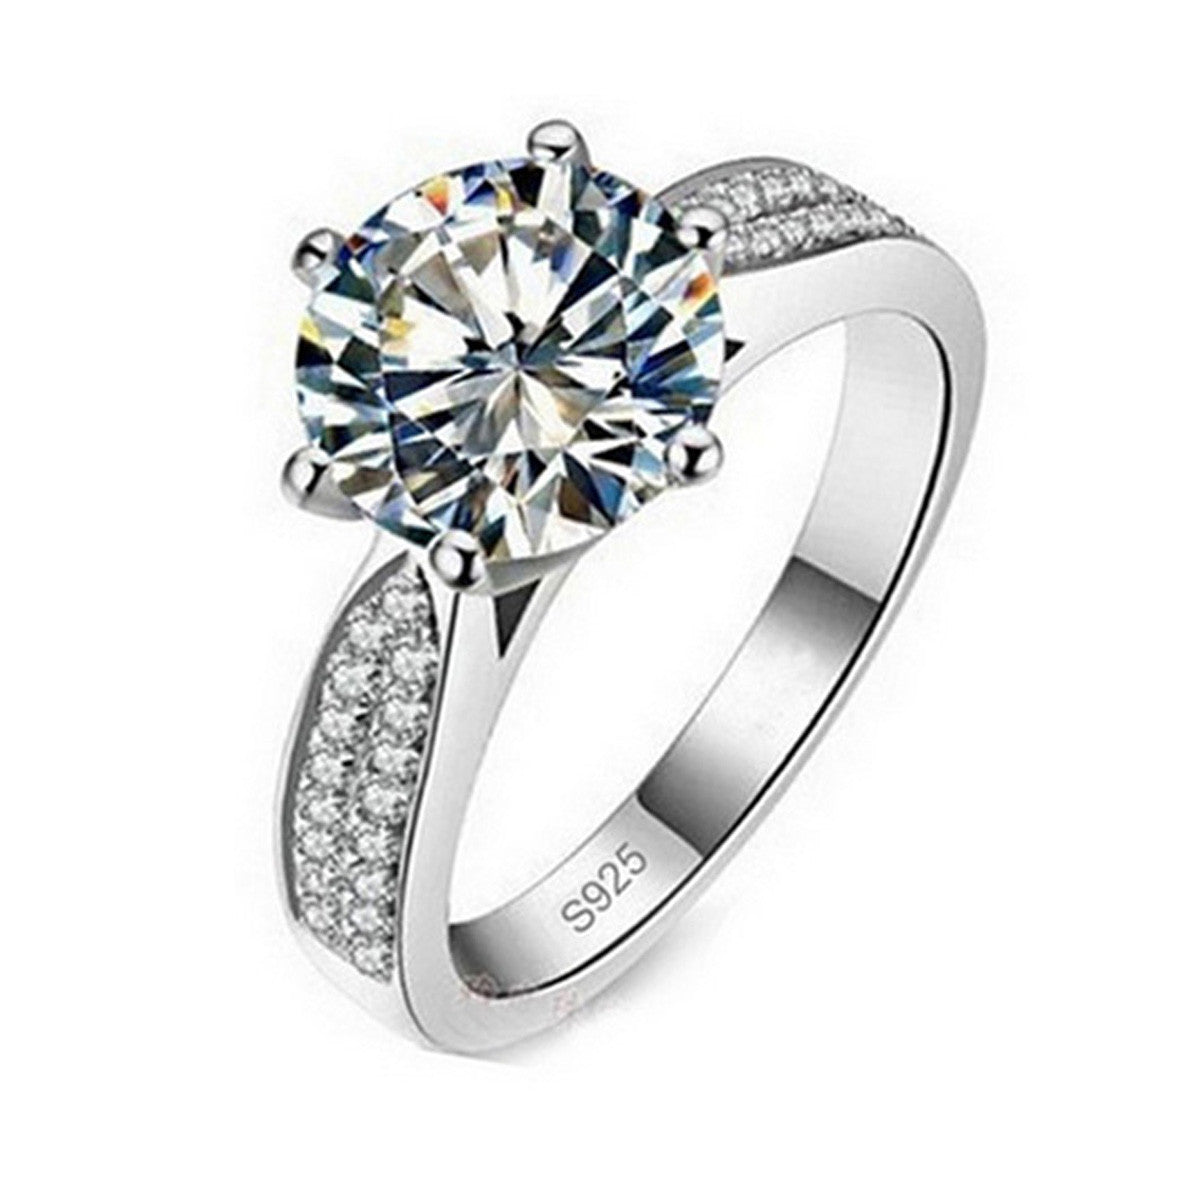 925 Sterling Silver 6 Carat Halo CZ Diamond Engagement Rings for